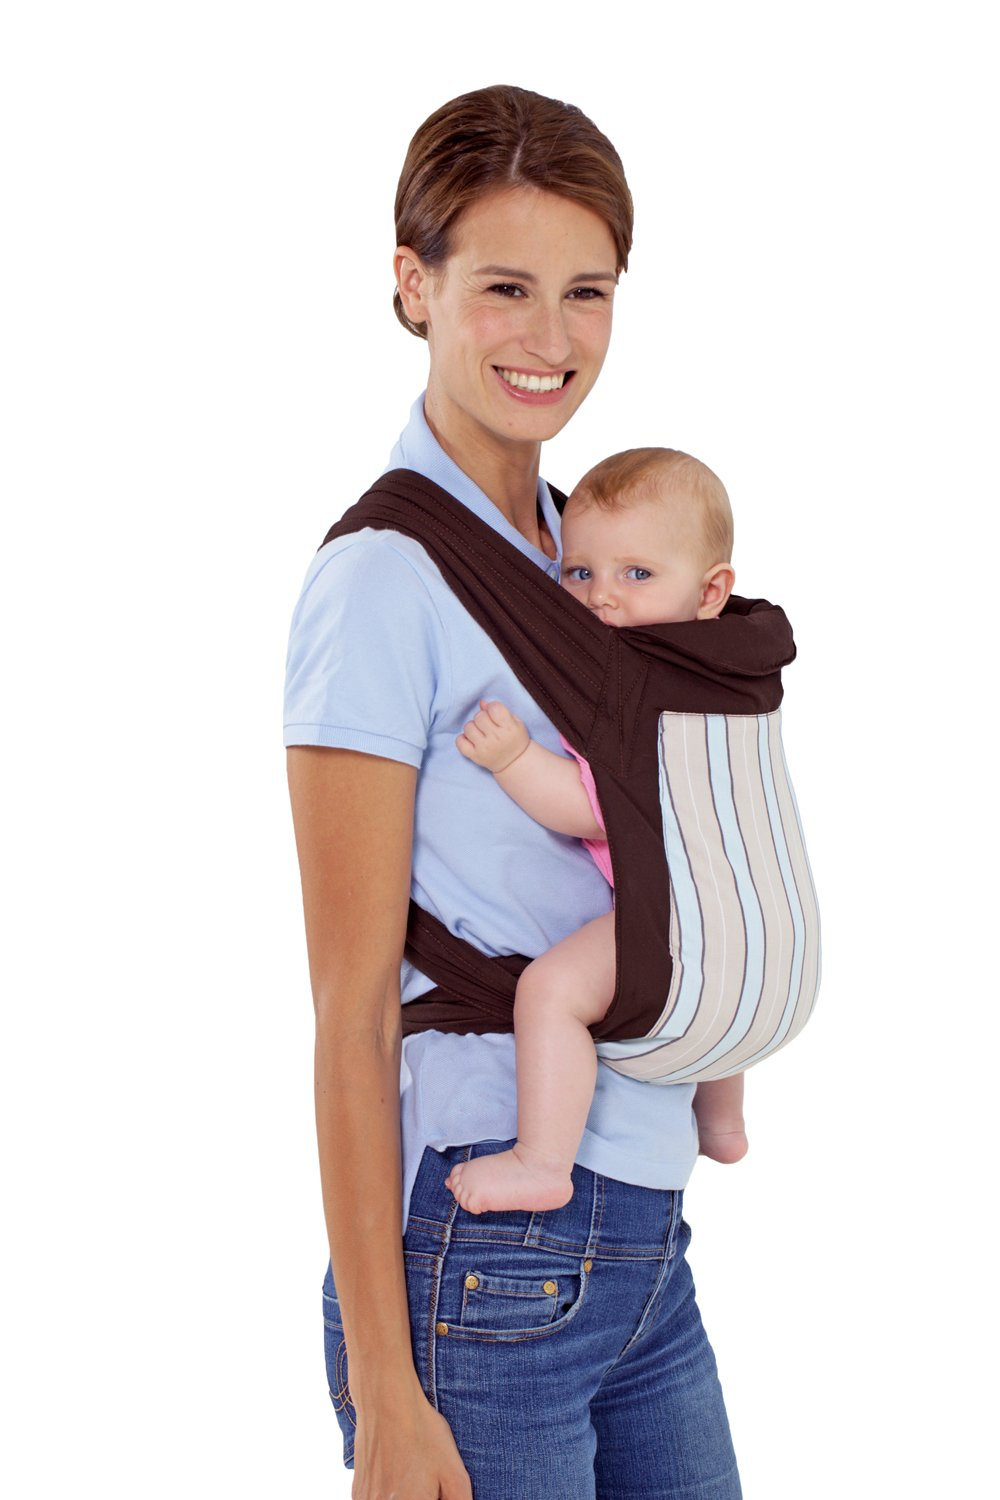 Amazonas Mei Tai Asian Traditional Baby Carrier  Available in 2 designs Carrier can be reversed Easy to put on 2